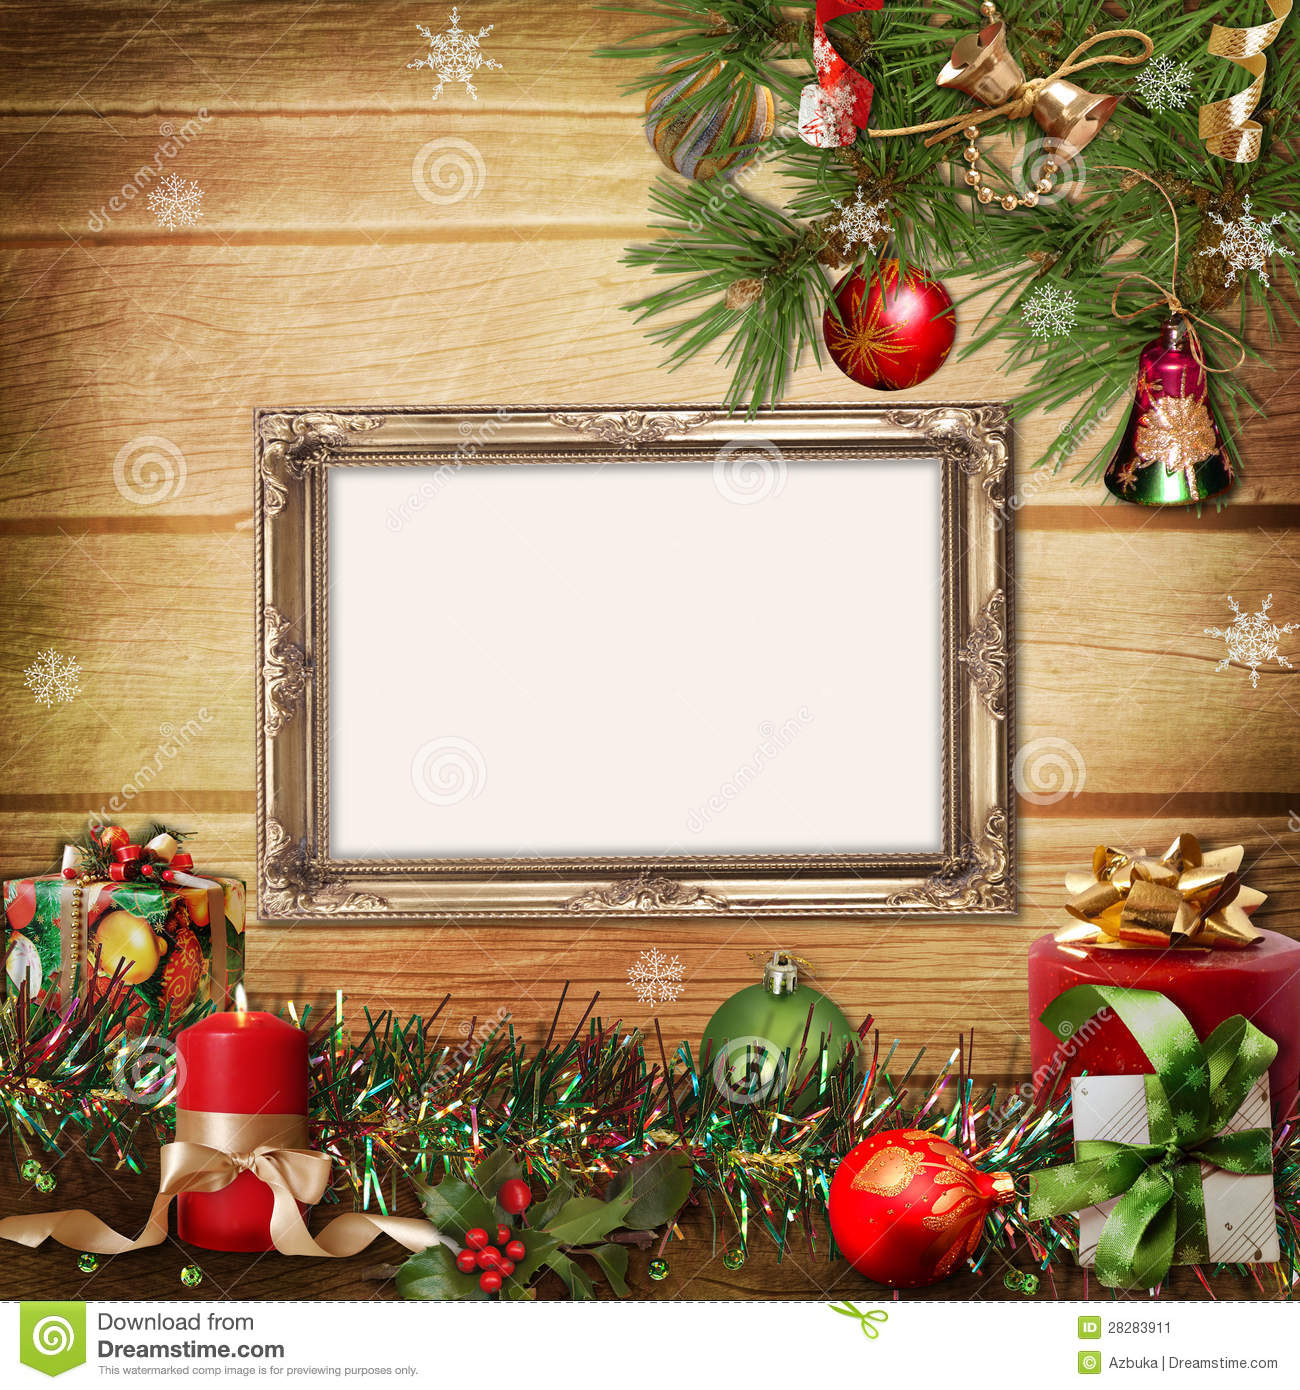 Christmas greeting card with frames for a family stock christmas greeting card with frames for a family kristyandbryce Image collections